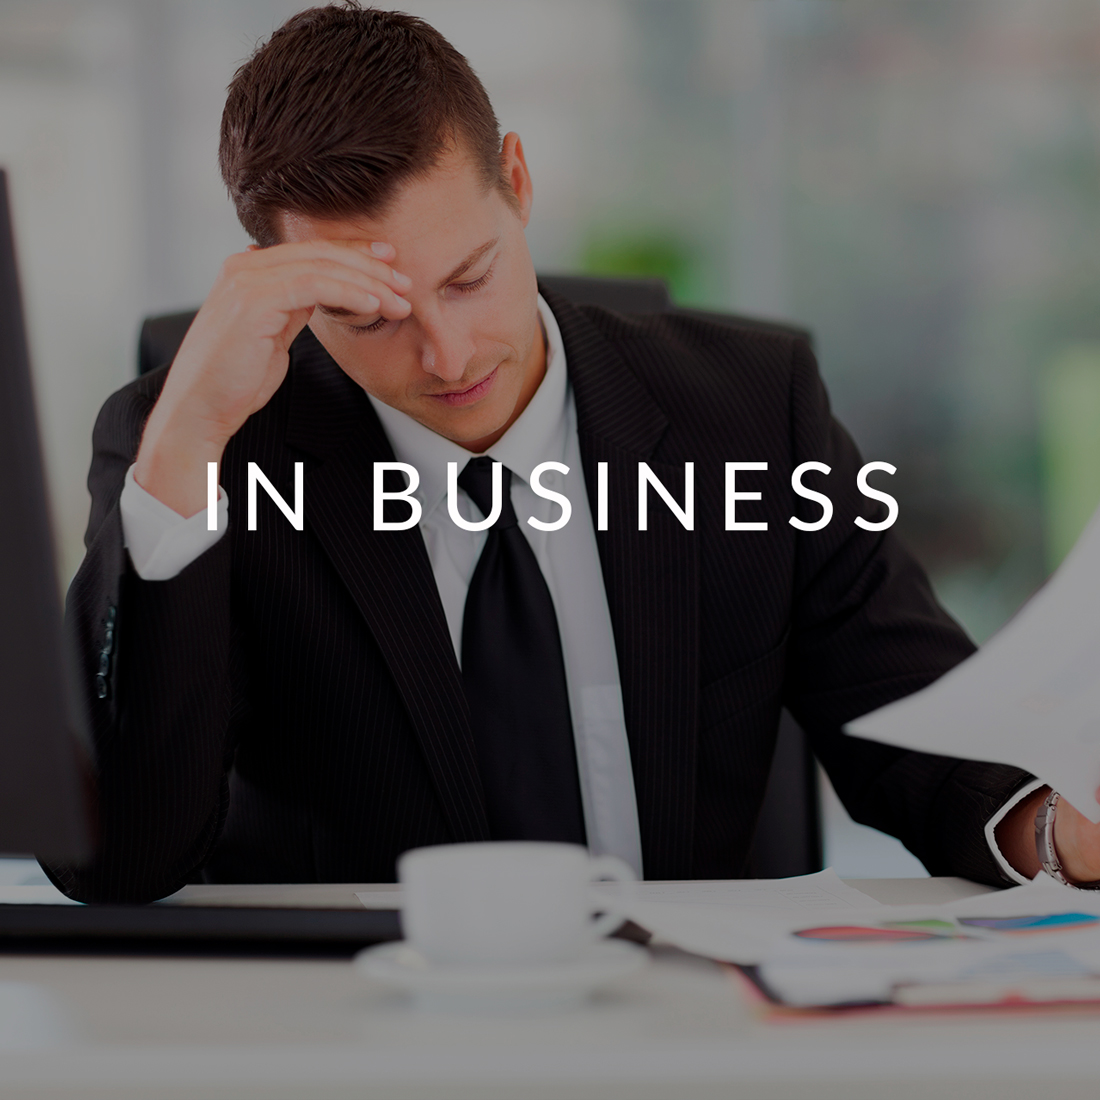 Fast Effective Reading can help you in the business world